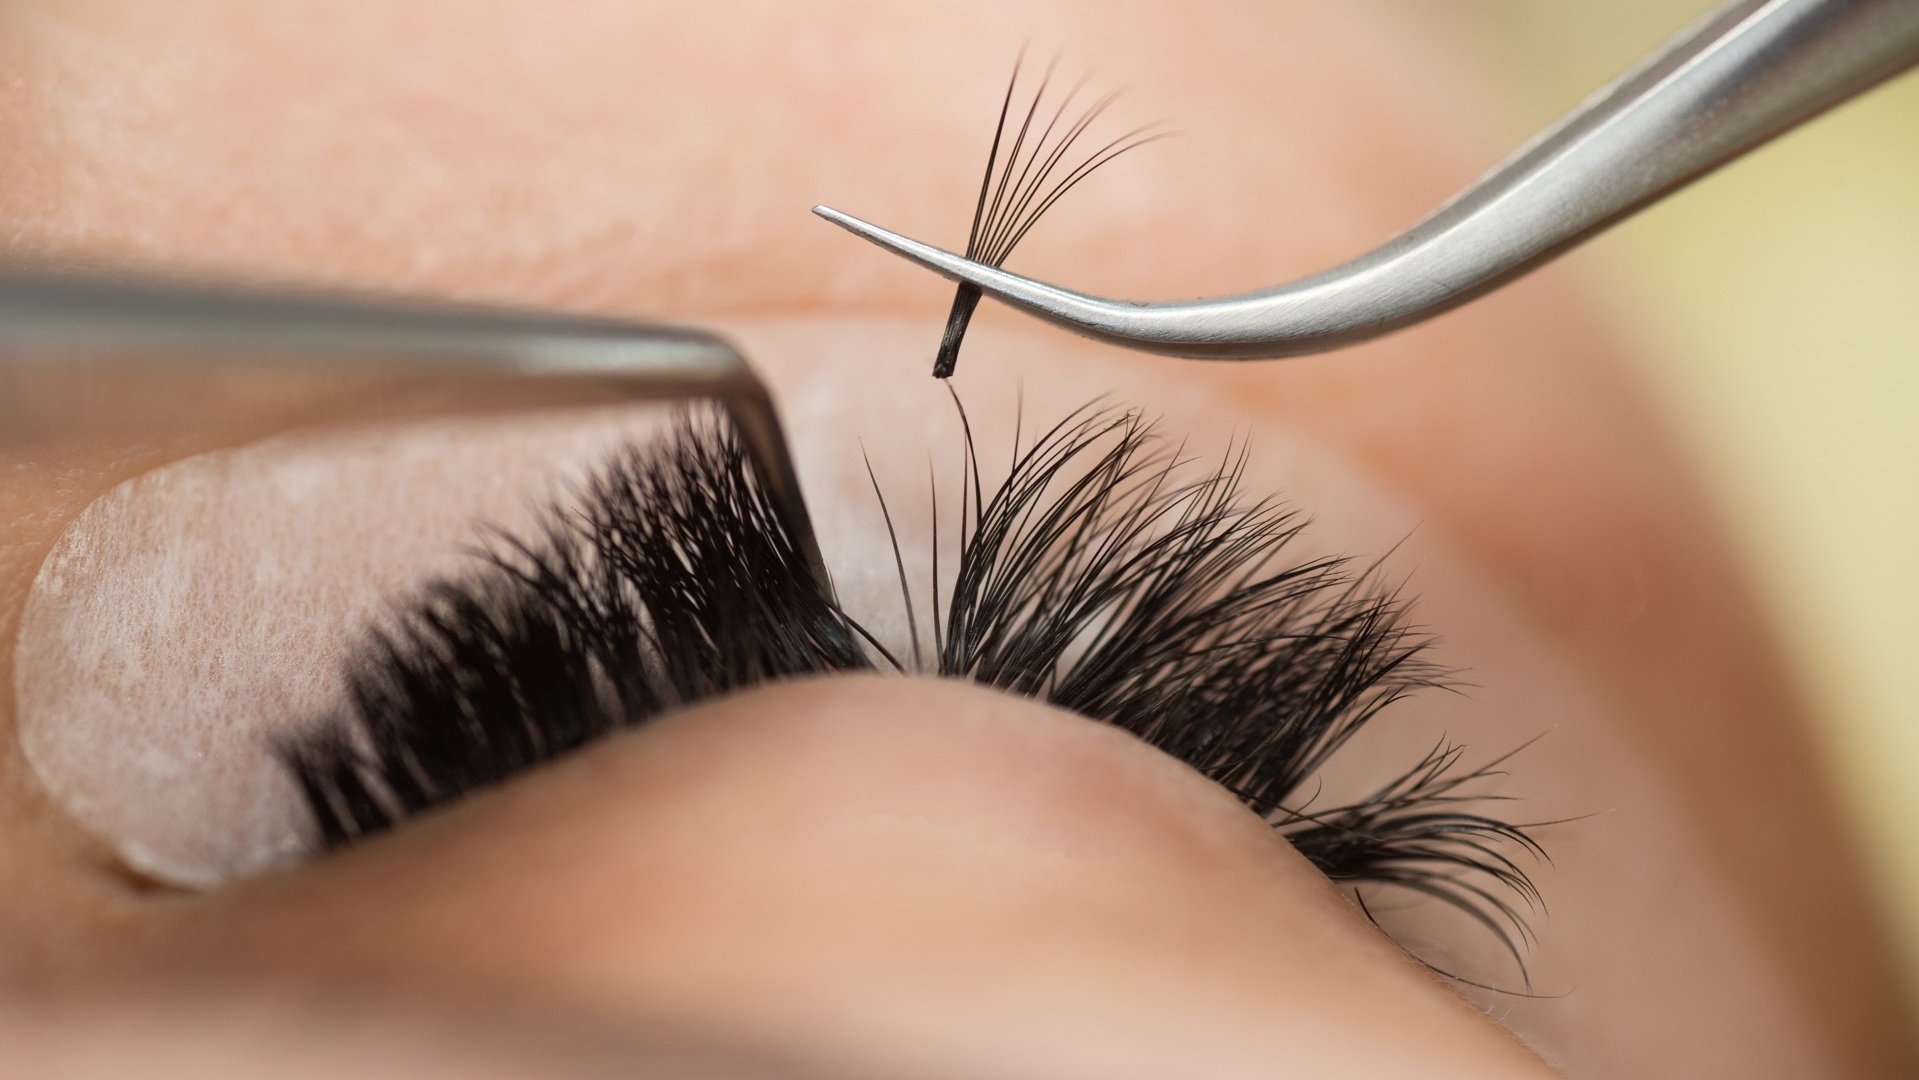 Volume Lashes - 2-6D lashes are placed on each natural lash. This look is perfect for those who love glam and fullness.